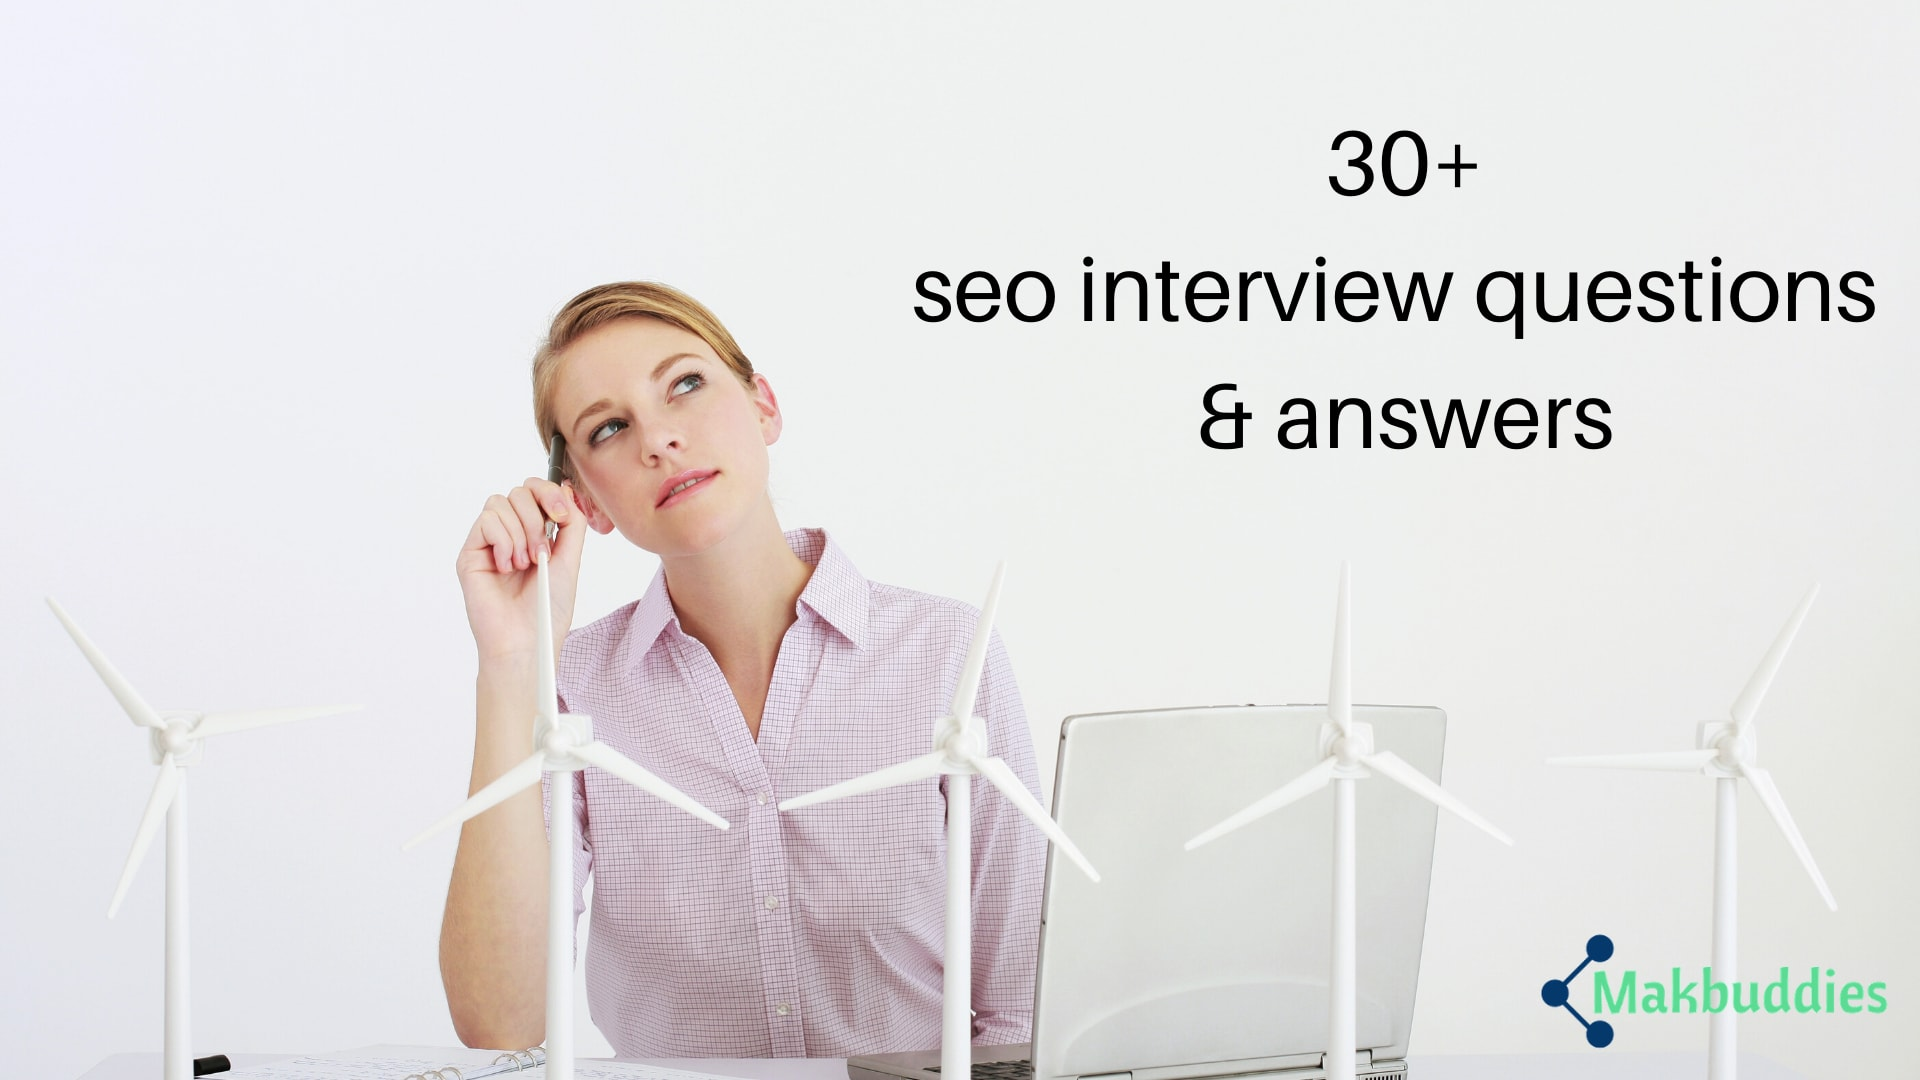 30 seo interview questions answers - 30+ SEO Interview Questions & Answers 2020